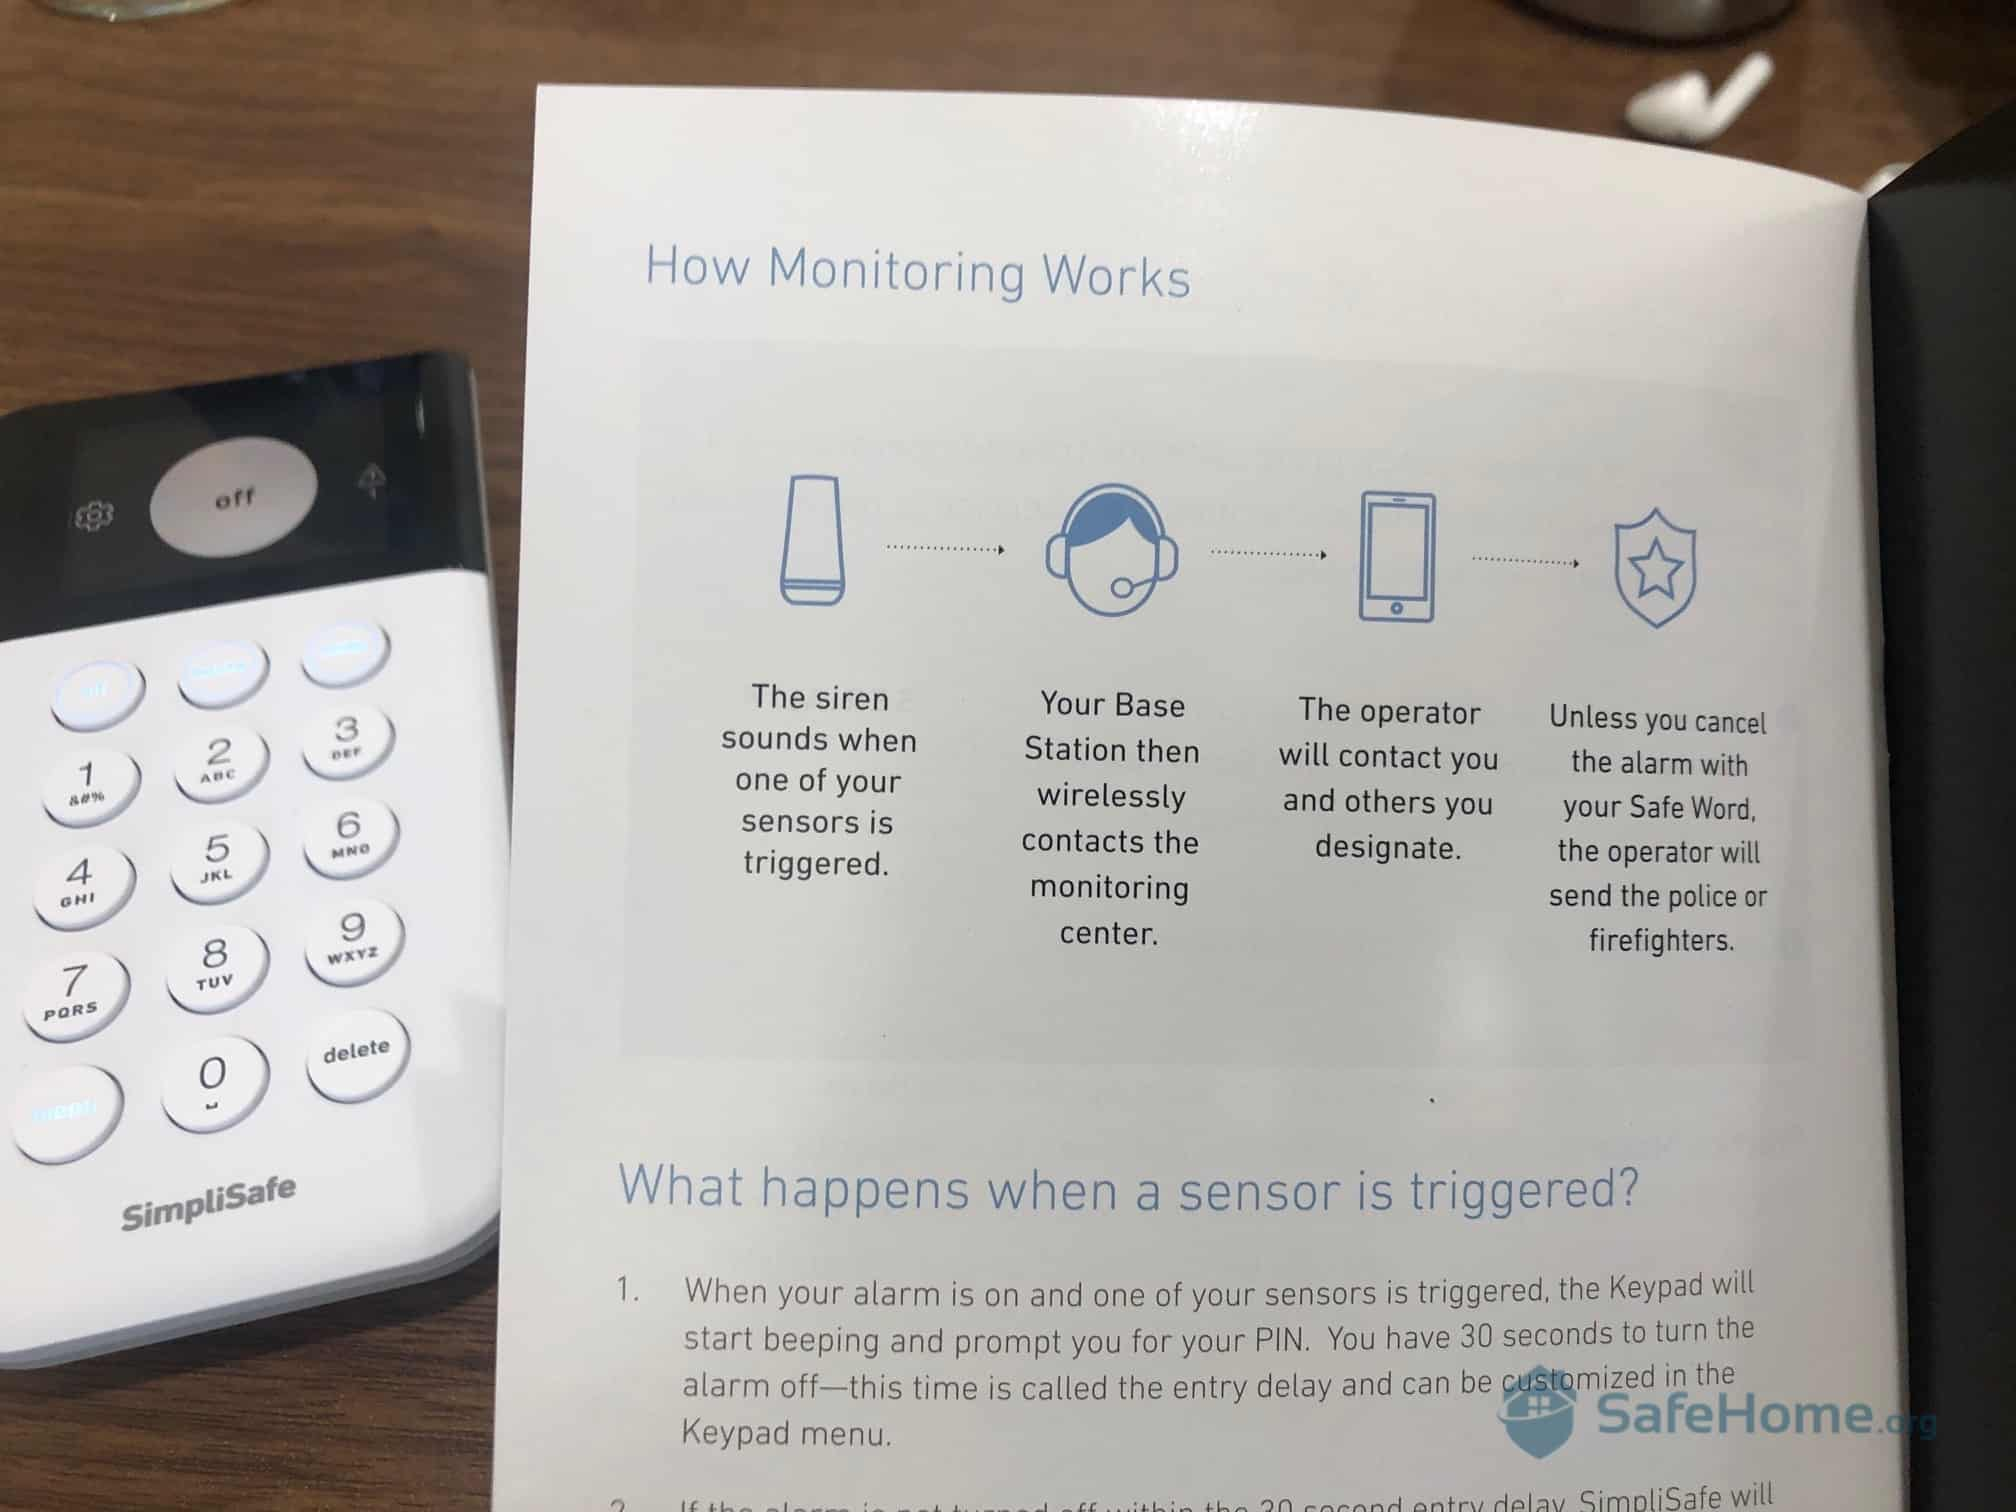 SimpliSafe Instructions - Monitoring